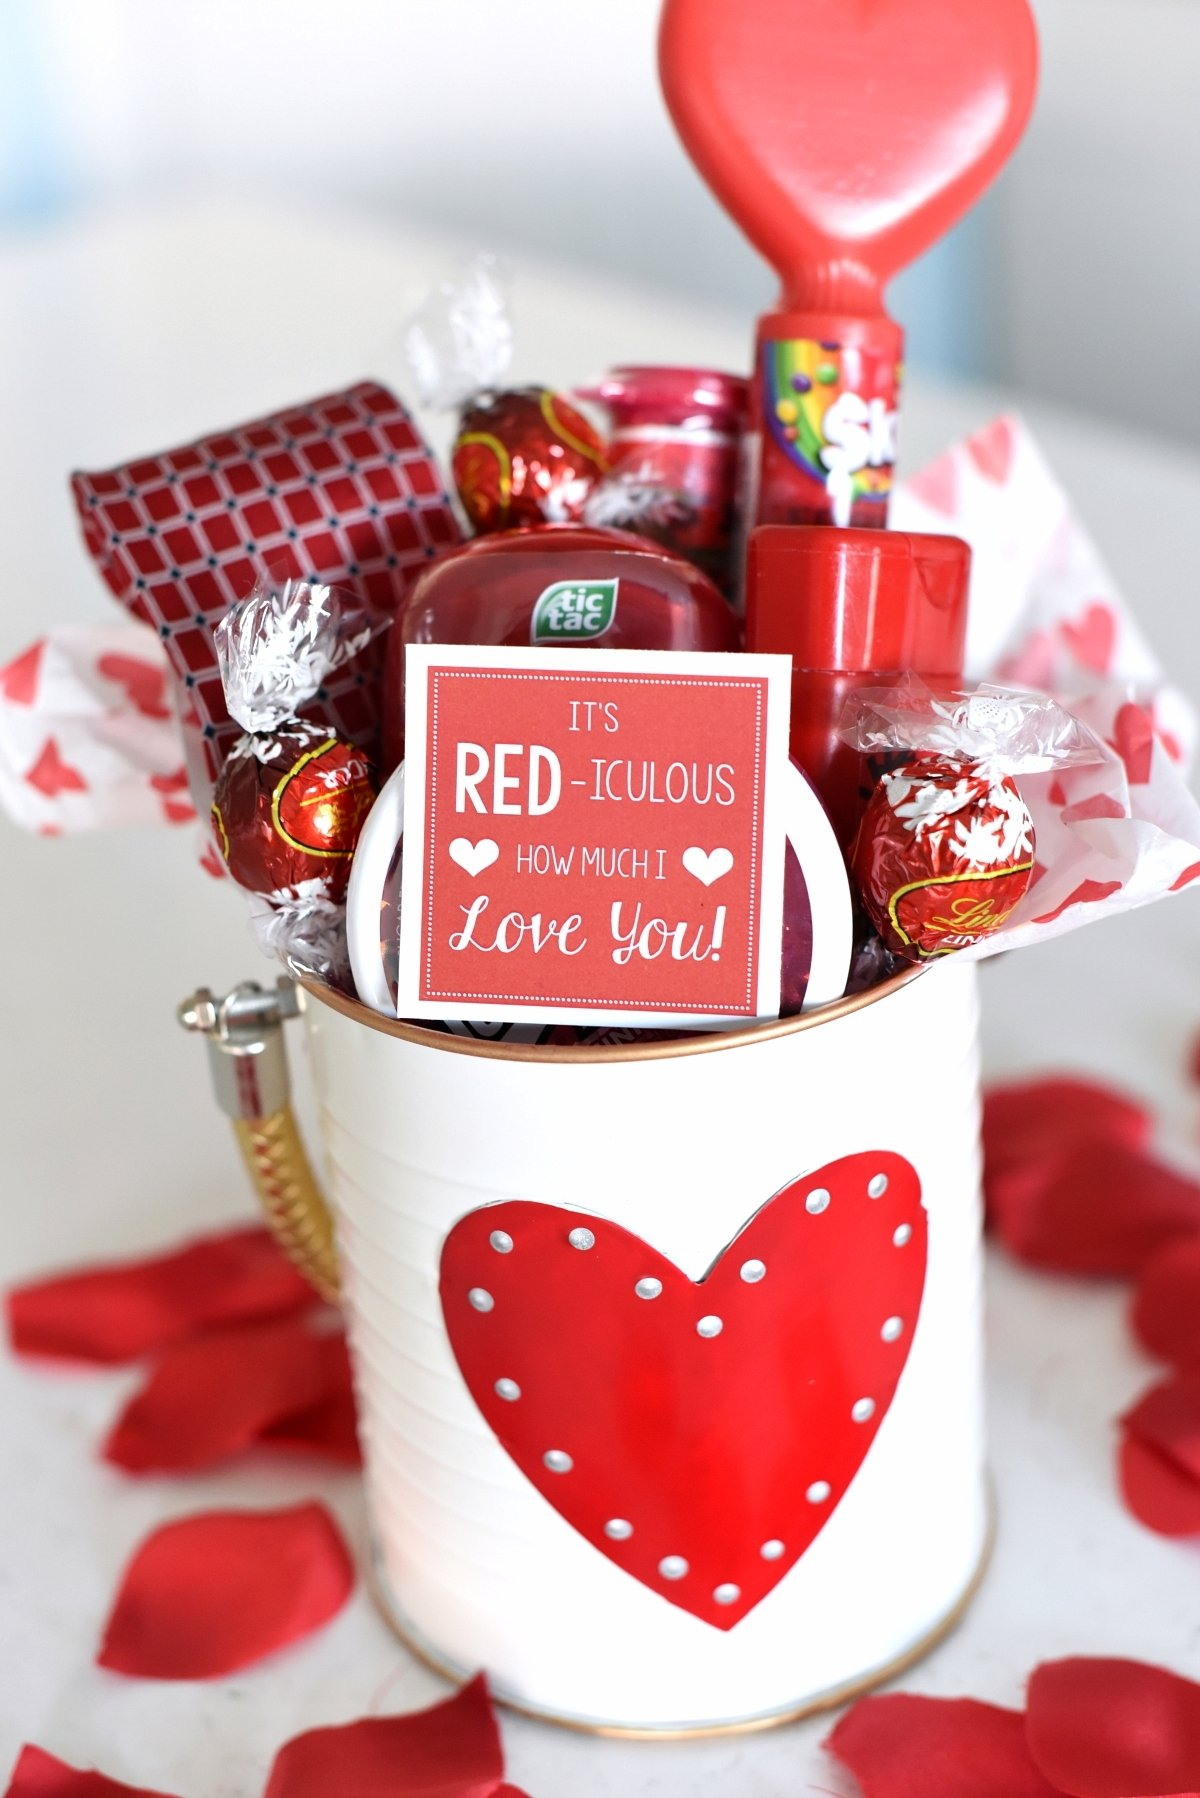 10 Ideal Valentines Day Gift Ideas For Husband cute valentines day gift idea red iculous basket 2 2020